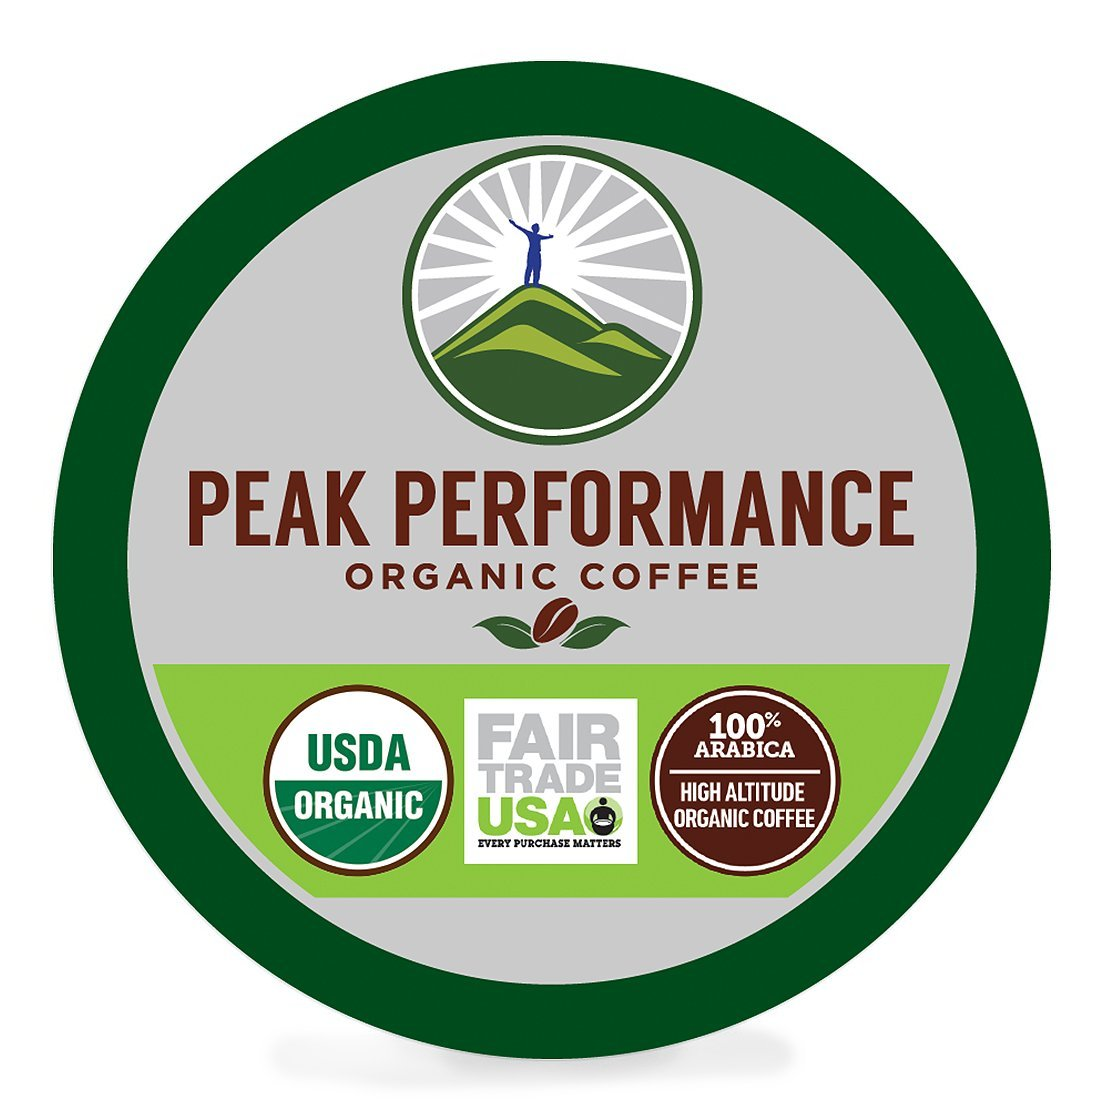 Peak Performance High Altitude Organic Coffee Pods. High Performance Body & Mind Coffee For High Performance Individuals. Fair Trade USDA Organic Beans. Medium Roast Single Serve Keurig 24 KCups